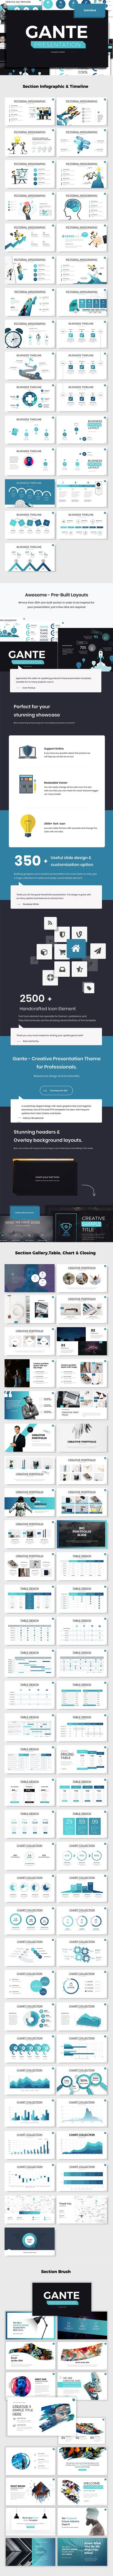 #Freebies : Impress your audience with this PowerPoint Template. This PowerPoint Template it comes with 4900+ total slides, This #presentation template included #handmade #Infographics for #Marketing, Social Media, #SEO, Company Profile, #USA, #Canada , Data Driven, #Flowcharts, Mind maps, Tables, SWOT Analysis, funnel #diagram, #PowerPoint timeline template, powerpoint background, Team and Many More,